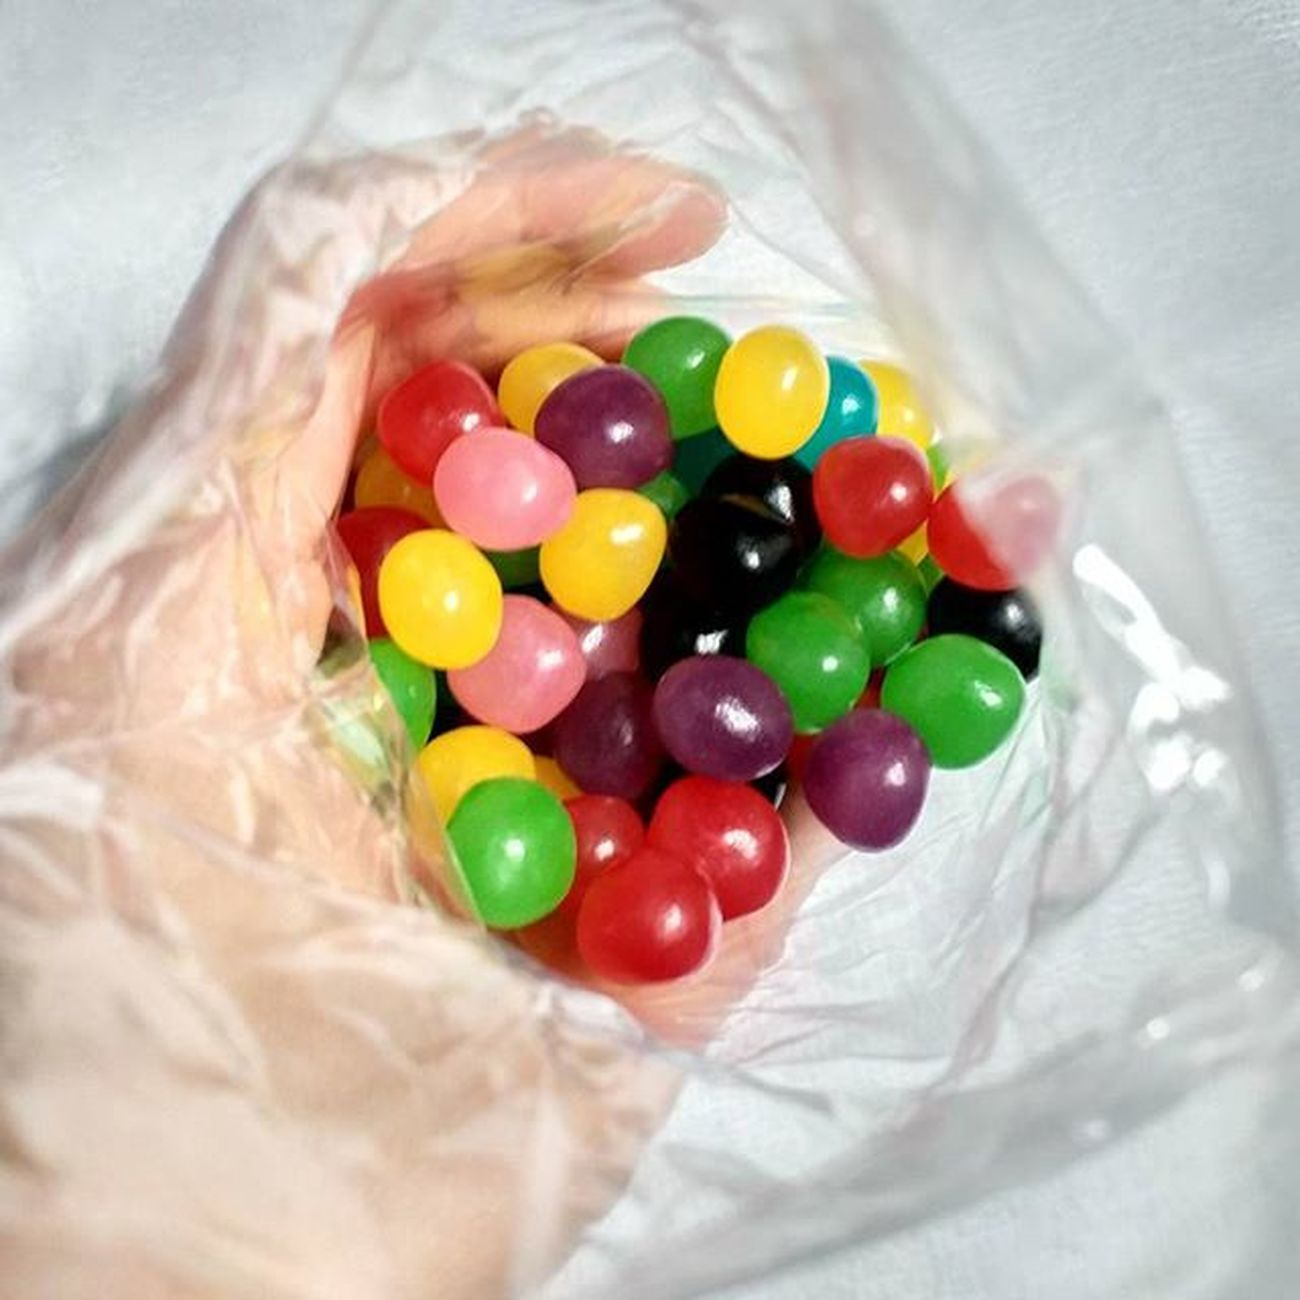 Jellybean Jelly Colorful Yellow Green Skyblue Purple Pink Blue Darkbrown Red Yummy Chewing 젤리 알록달록 맛있다 쫄깃 간식스타그램 Jelly beans 🙌❤